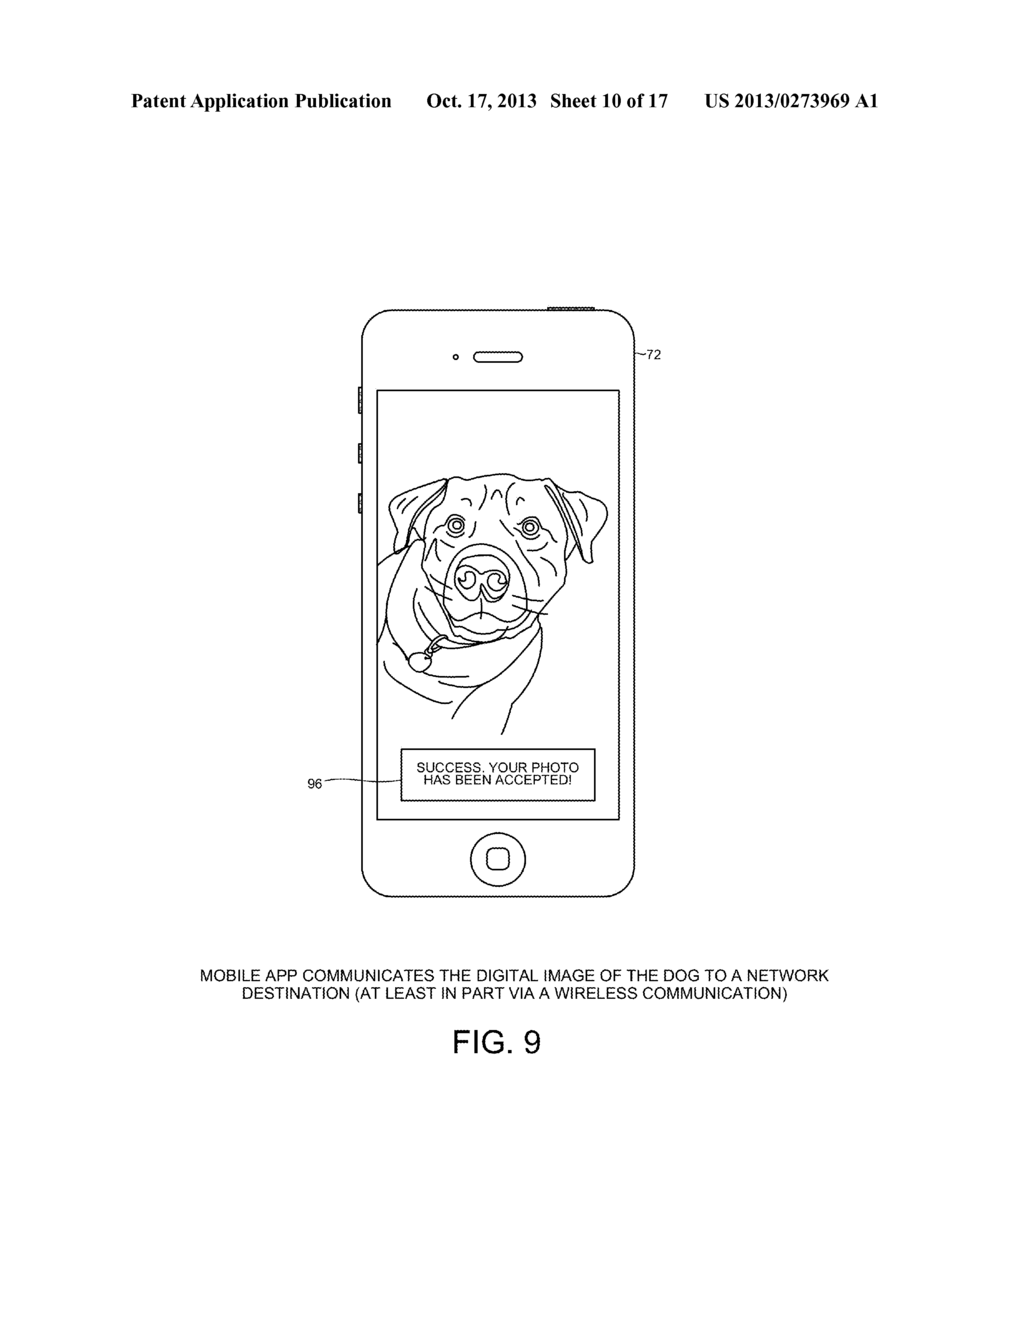 Dog Communication Diagram Schematicscom Repellent Ultrasonic Circuit Mobile App That Generates A Sound To Capture Data For Lost Pet Identifying System